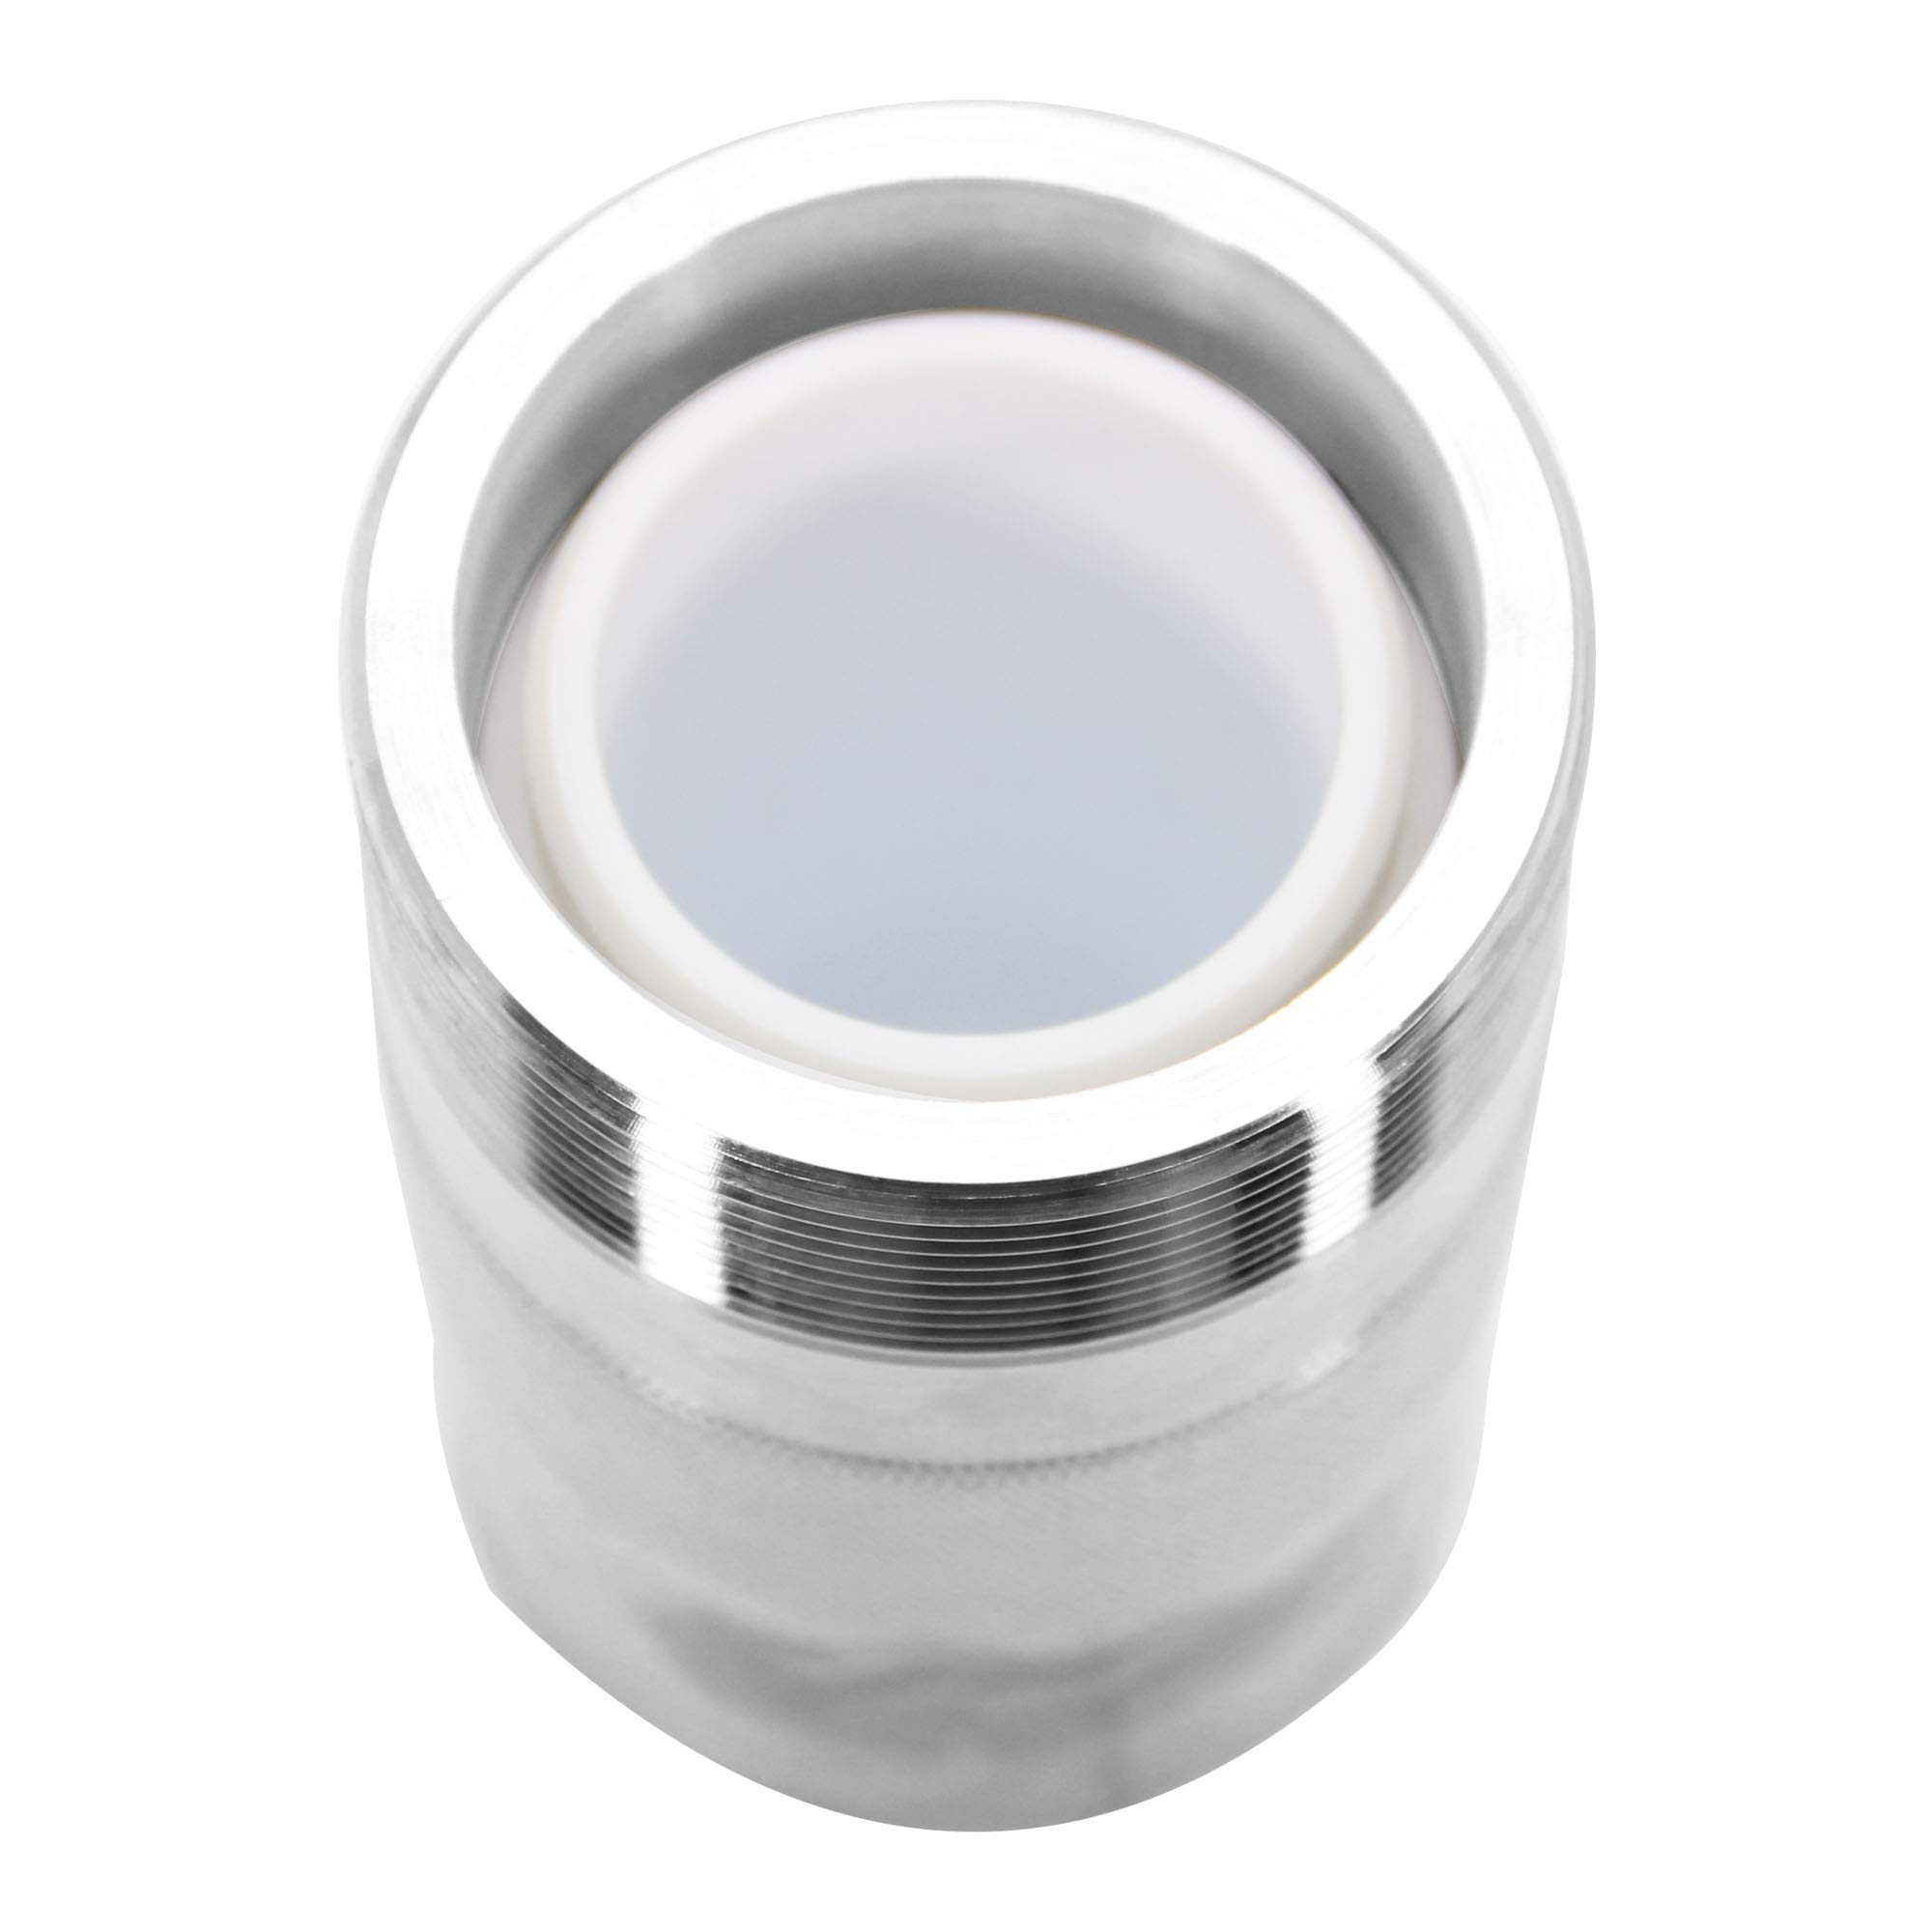 BAOSHISHAN 100ml Hydrothermal Synthesis Autoclave Reactor 6Mpa 240C with Pressure Relief Hole and 7mm Thickening PTFE Lining Acid and Alkali Resistance by BAOSHISHAN (Image #5)